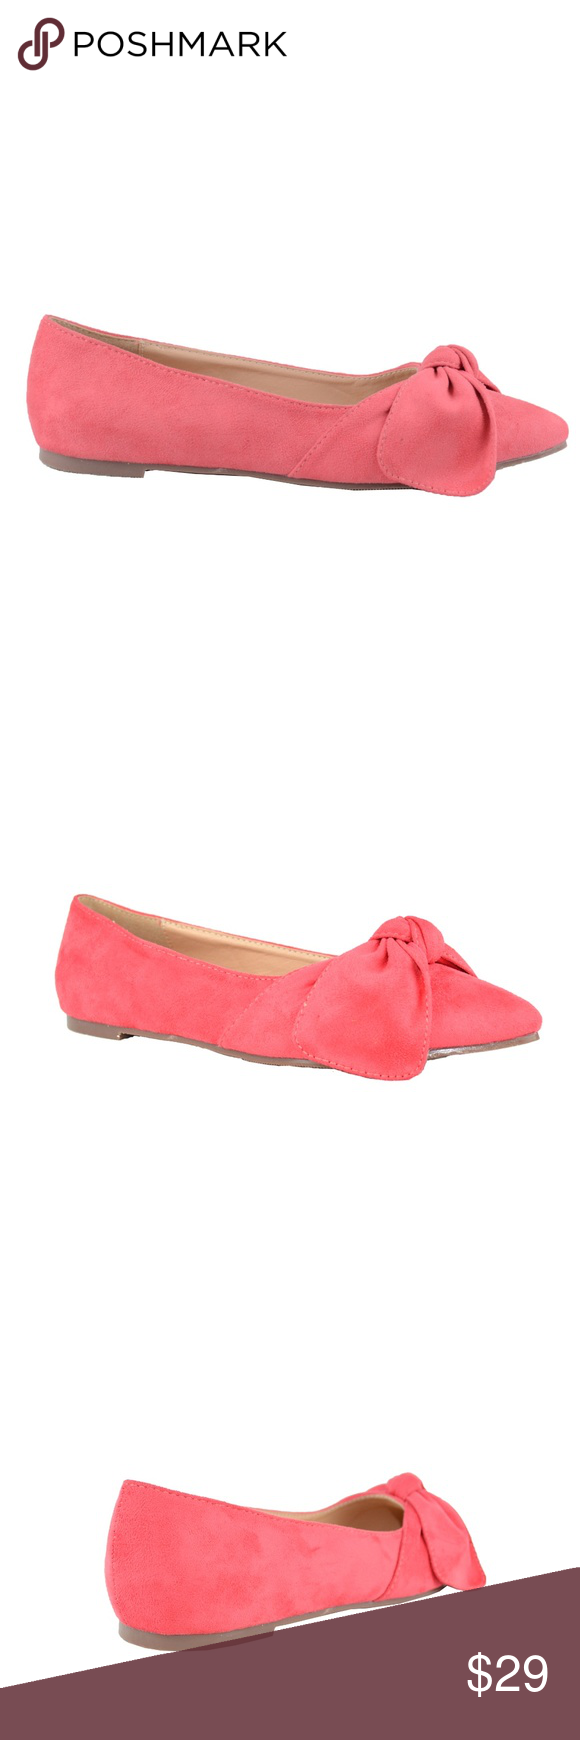 a0be46765a Women s Mauve Suede Flat Ballet With Bow Detail Pointy Toe with Bow Details  Approx.